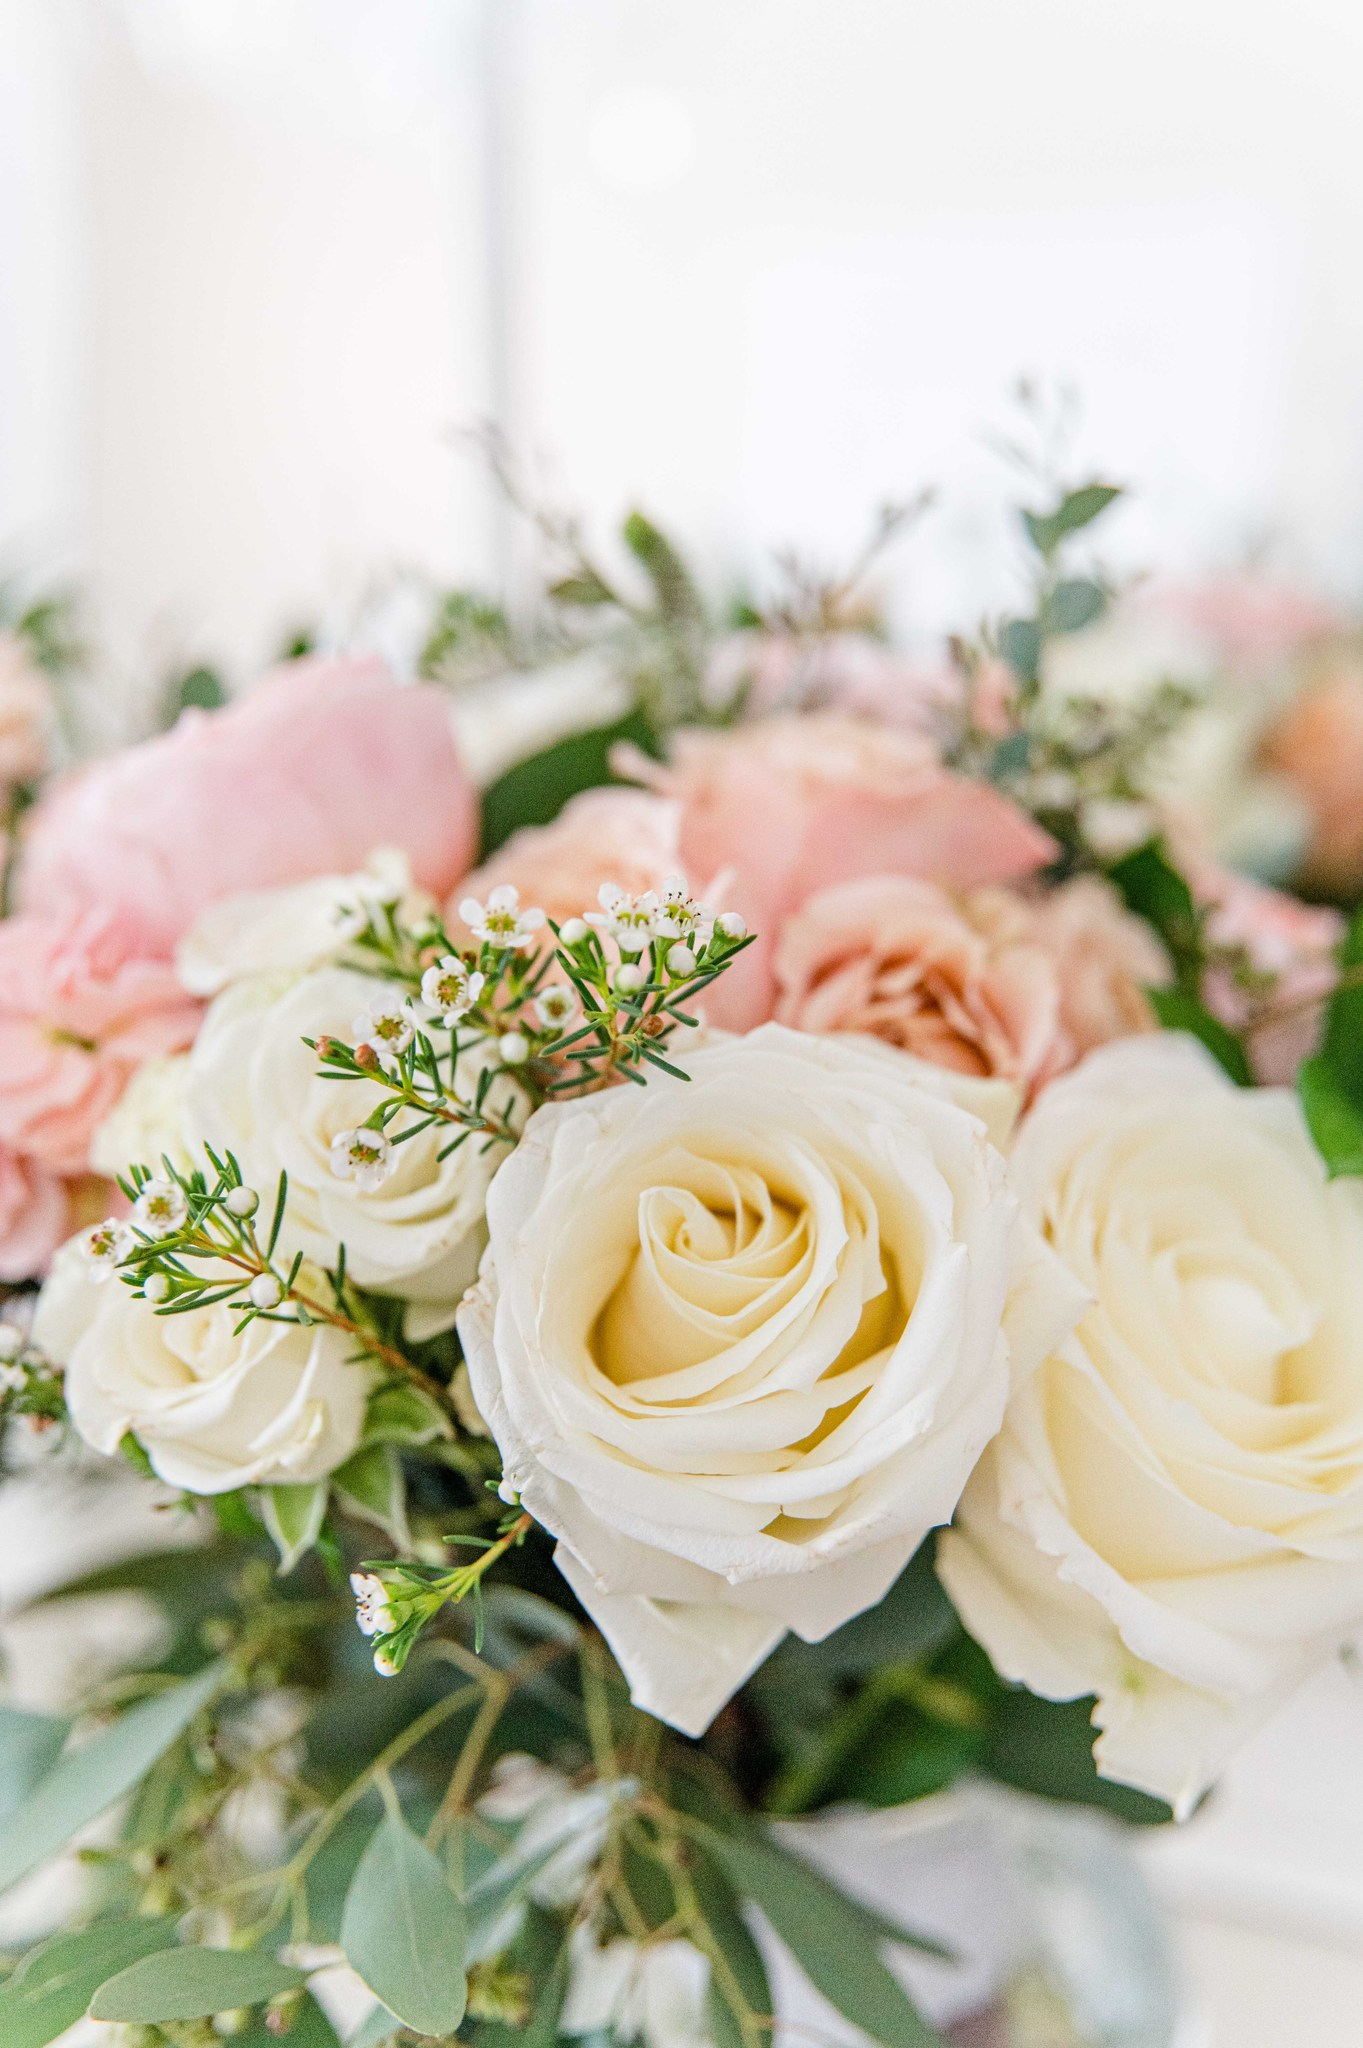 Pink and white wedding roses